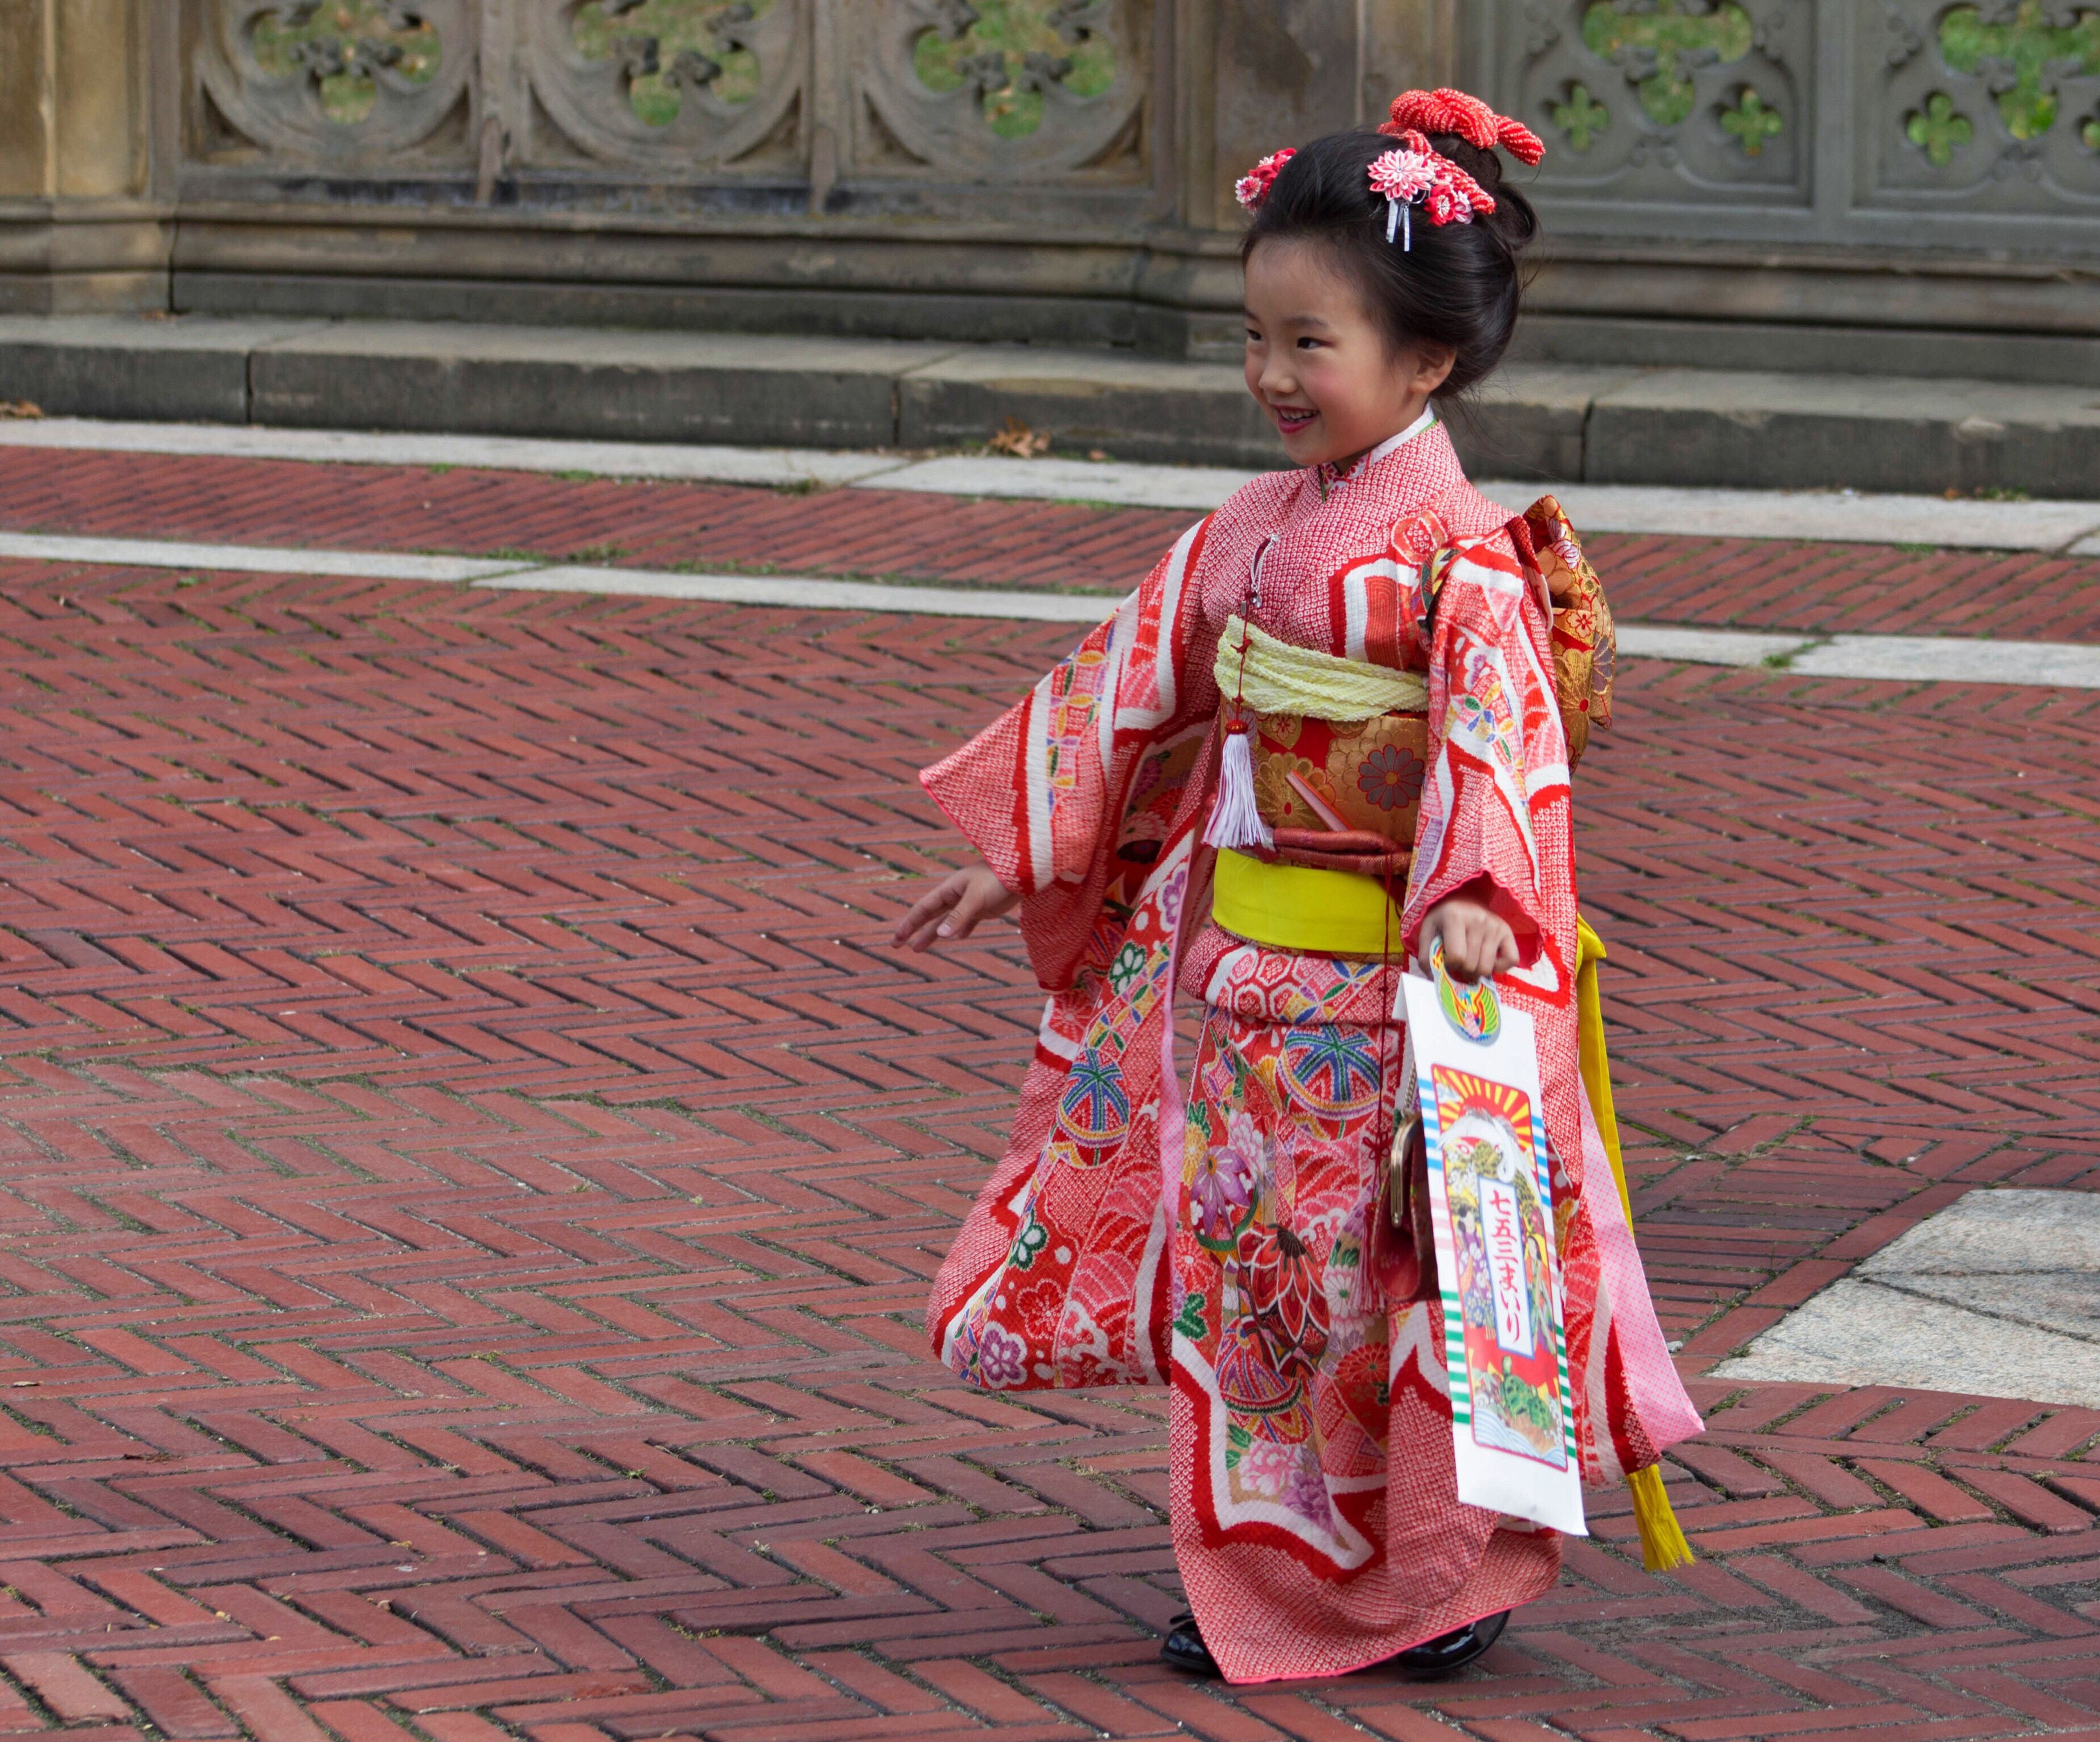 child, traditional clothing, sitting, tradition, arts culture and entertainment, performance, one person, period costume, people, outdoors, adult, day